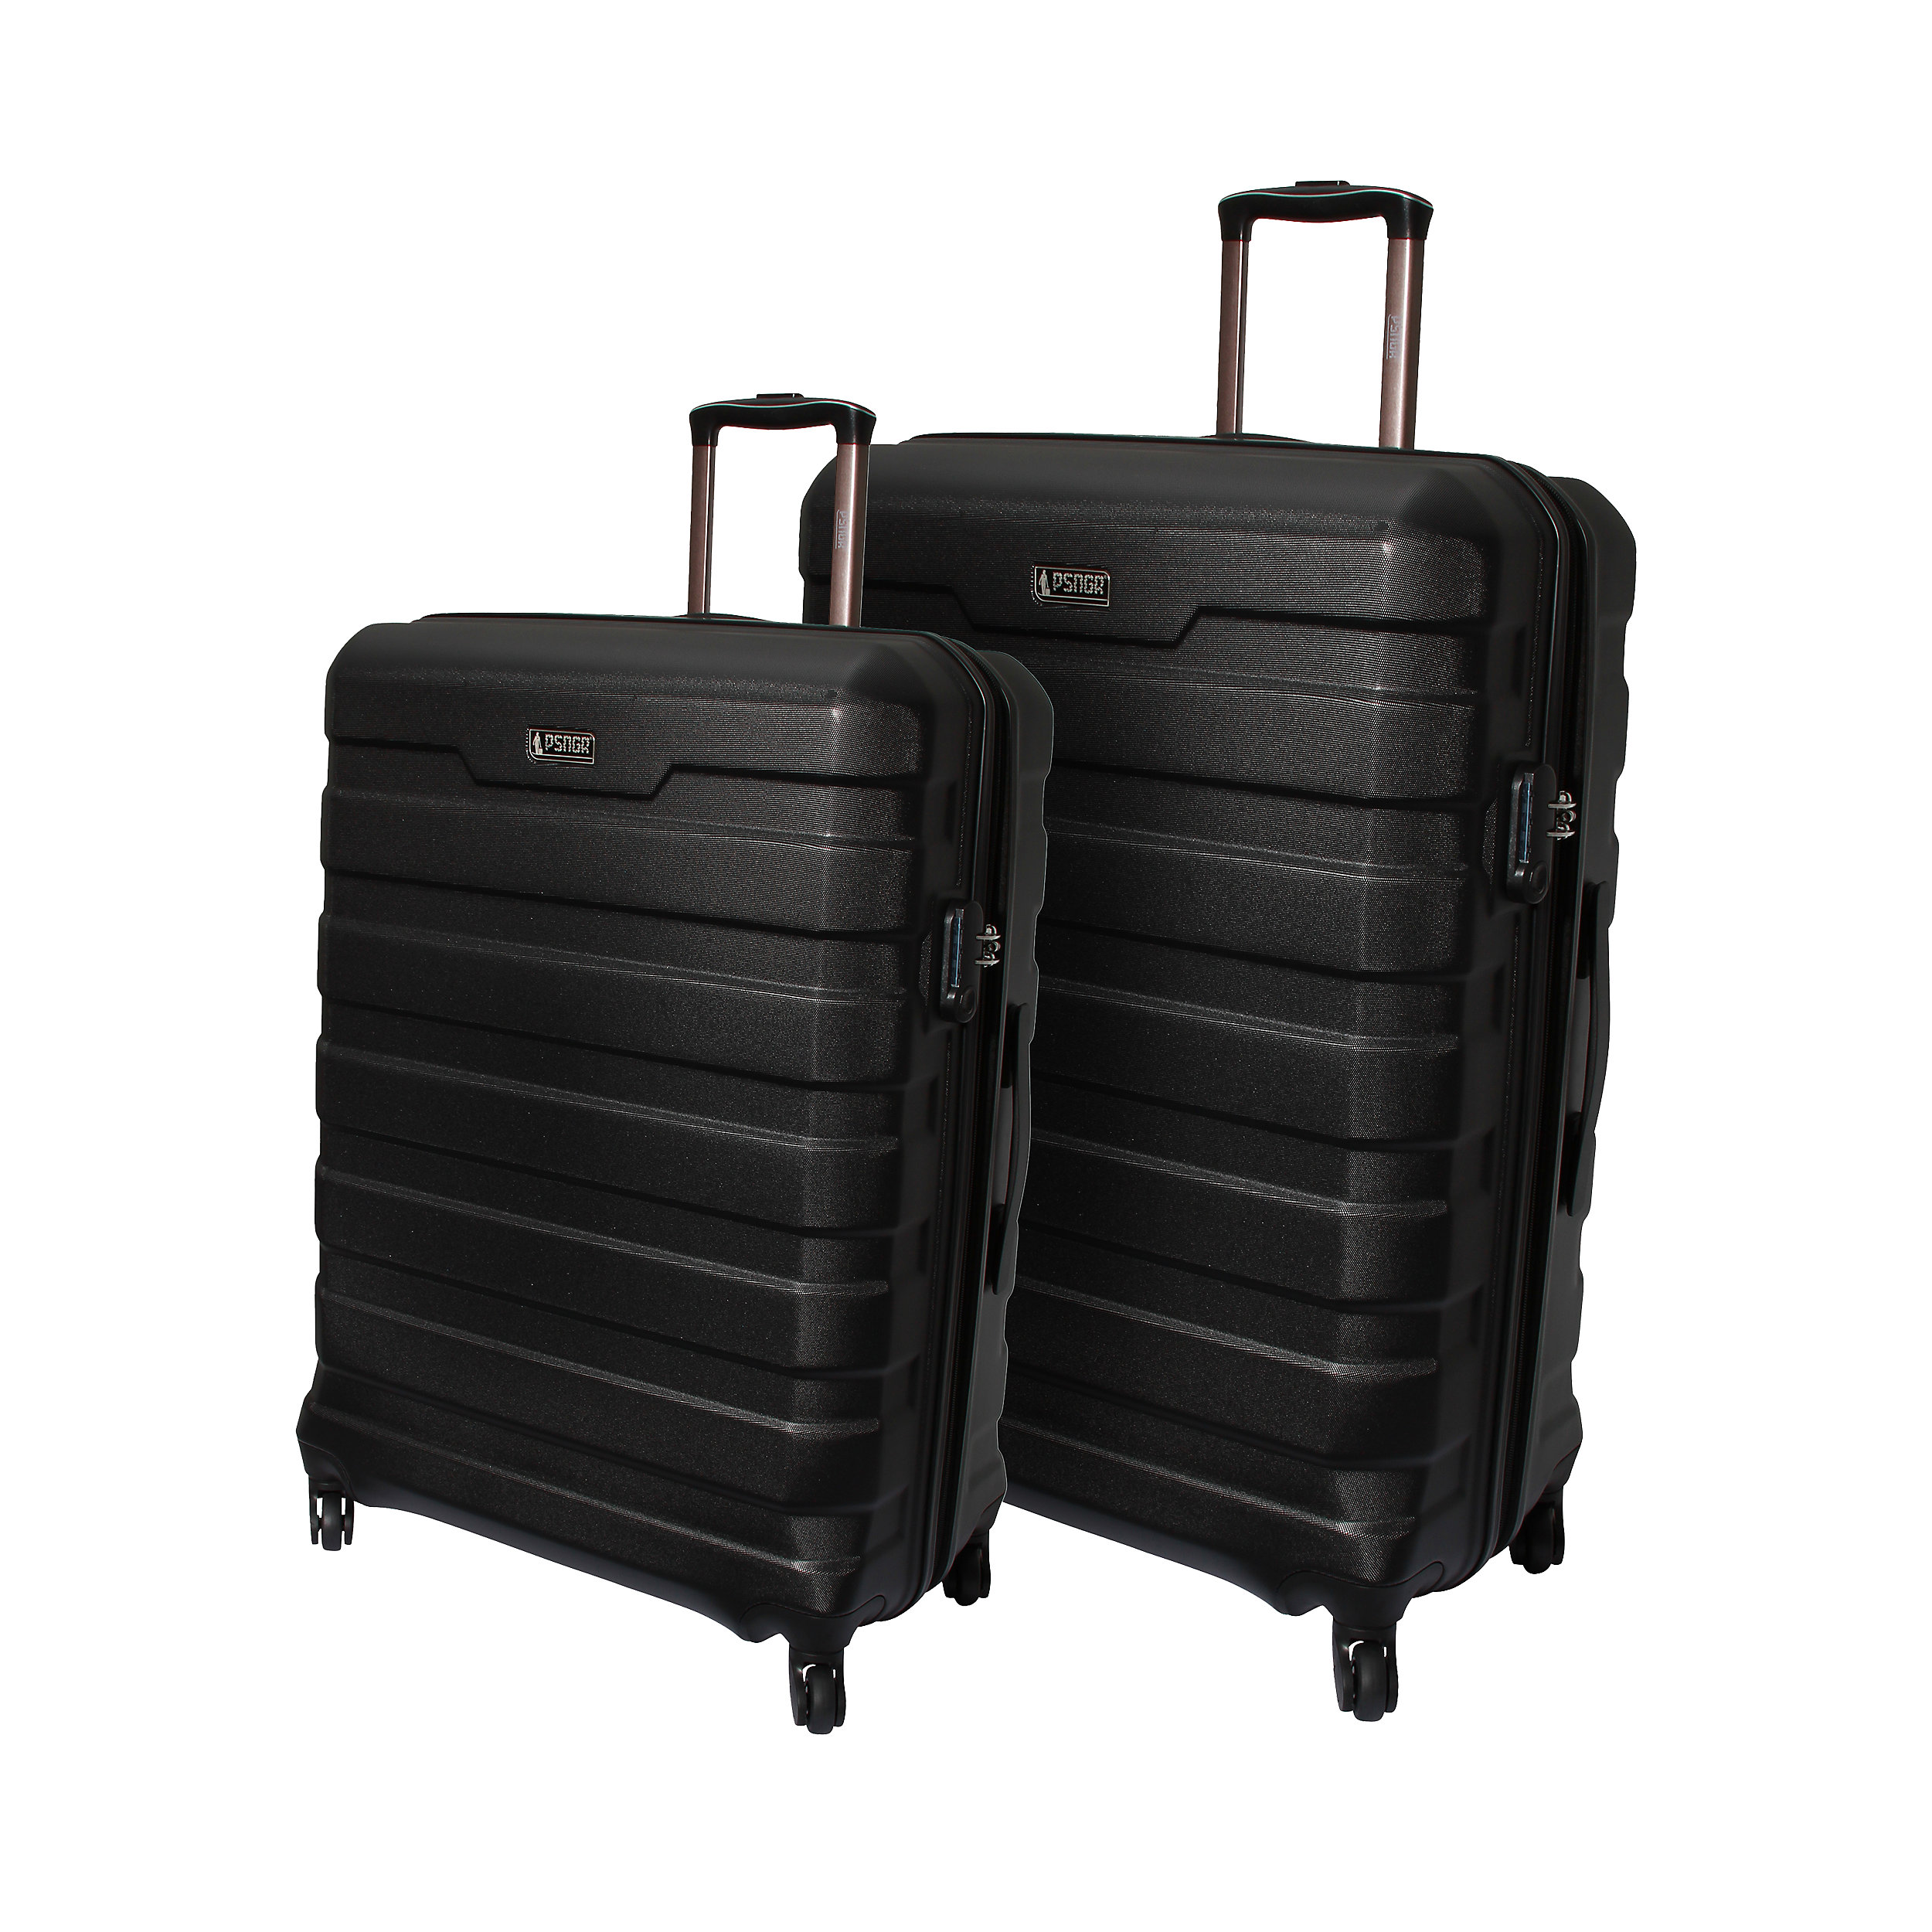 2-part Trolley Set with 4 wheels with 4 wheels 66/76 cm EXP Chicago M/L 185 Liter